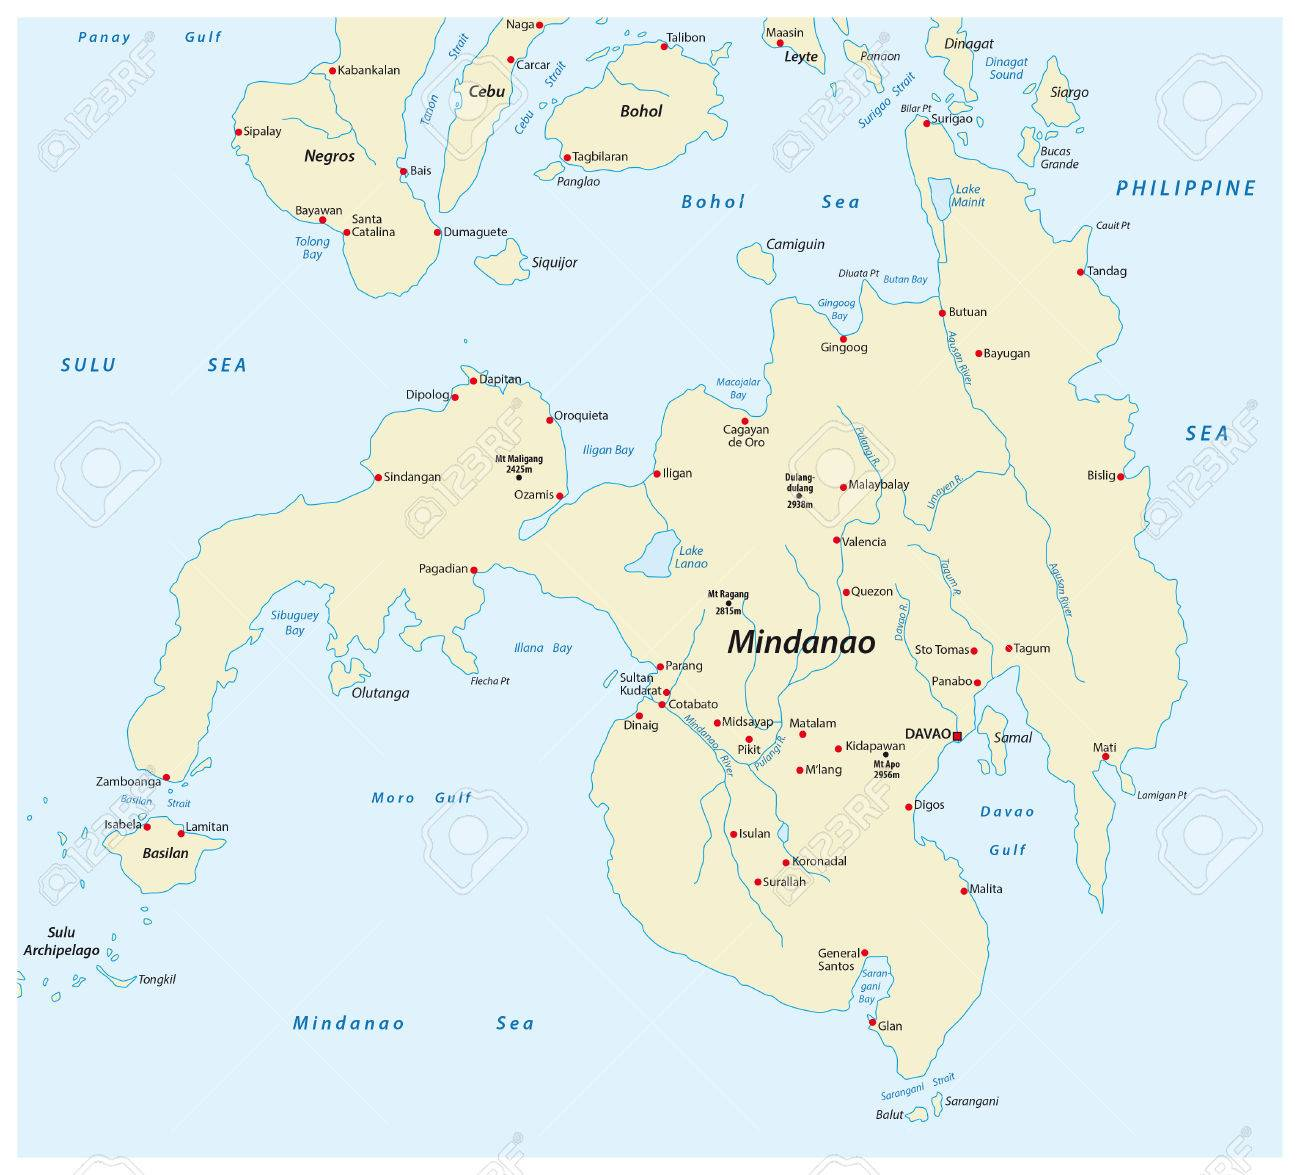 Map Of The Second Largest Philippine Island Mindanao Royalty Free